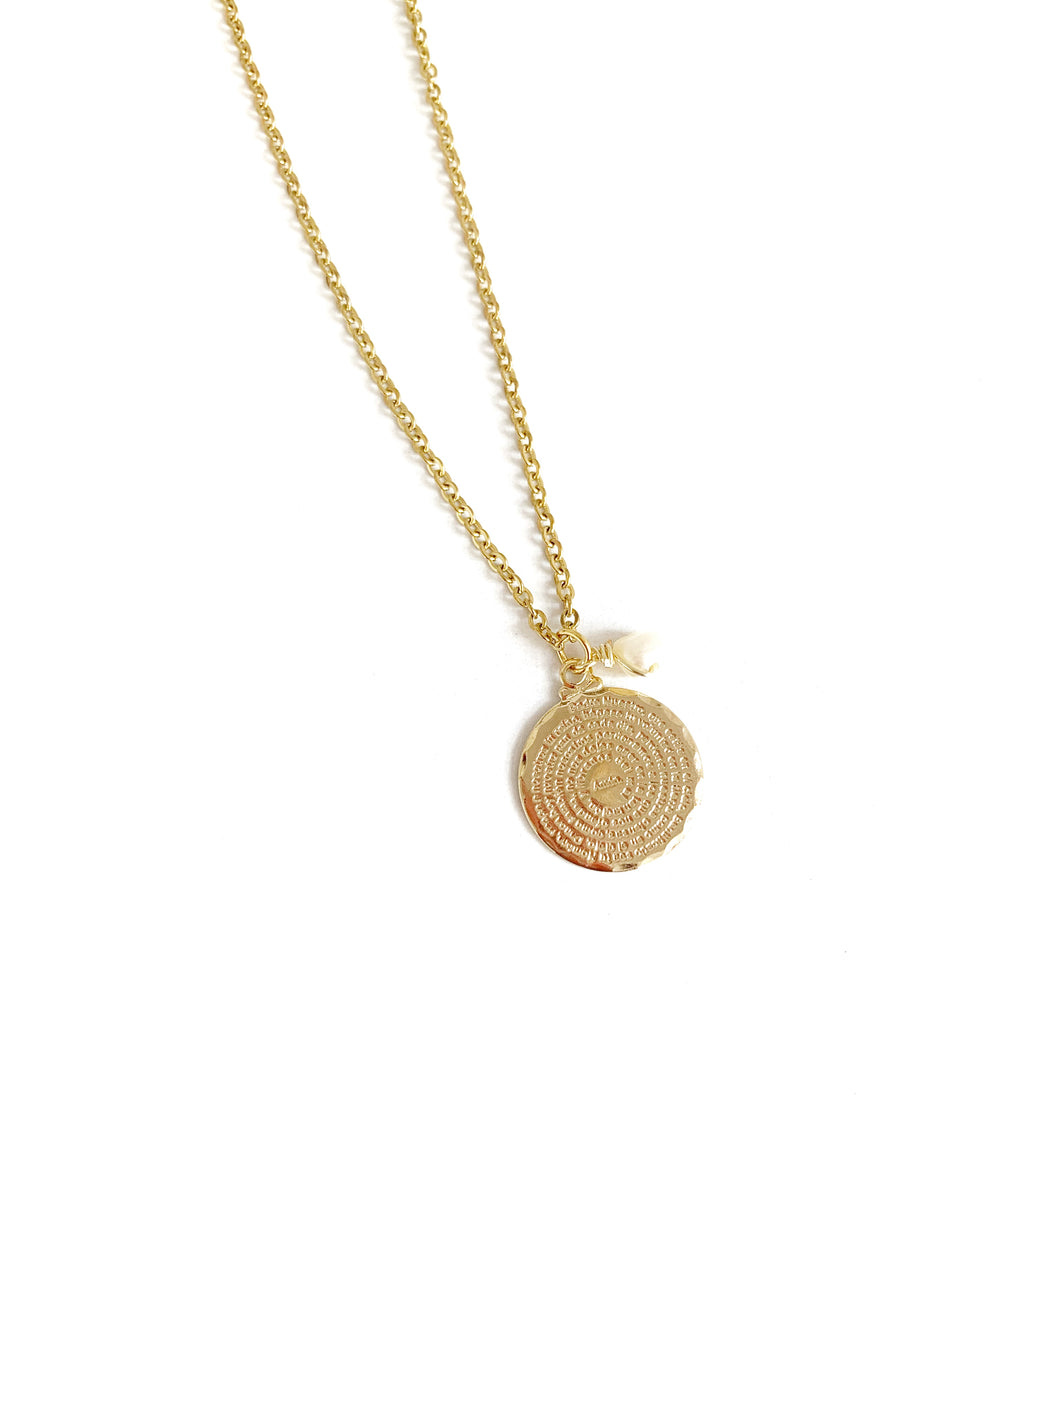 Padre Nuestro Small Necklace